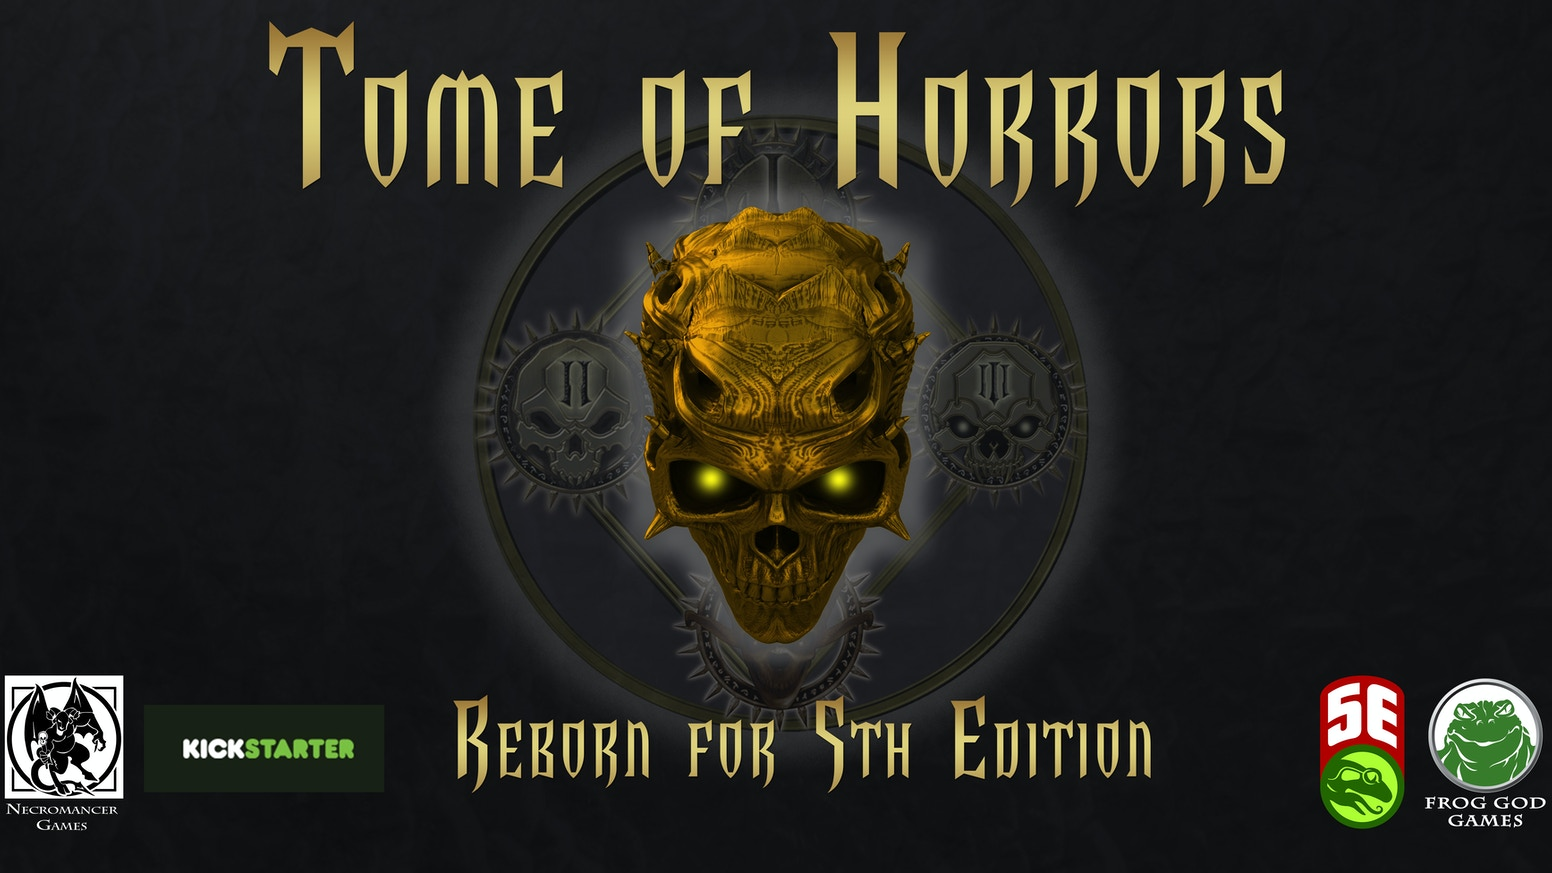 Tome of Horrors: Reborn for Fifth Edition by Frog God Games